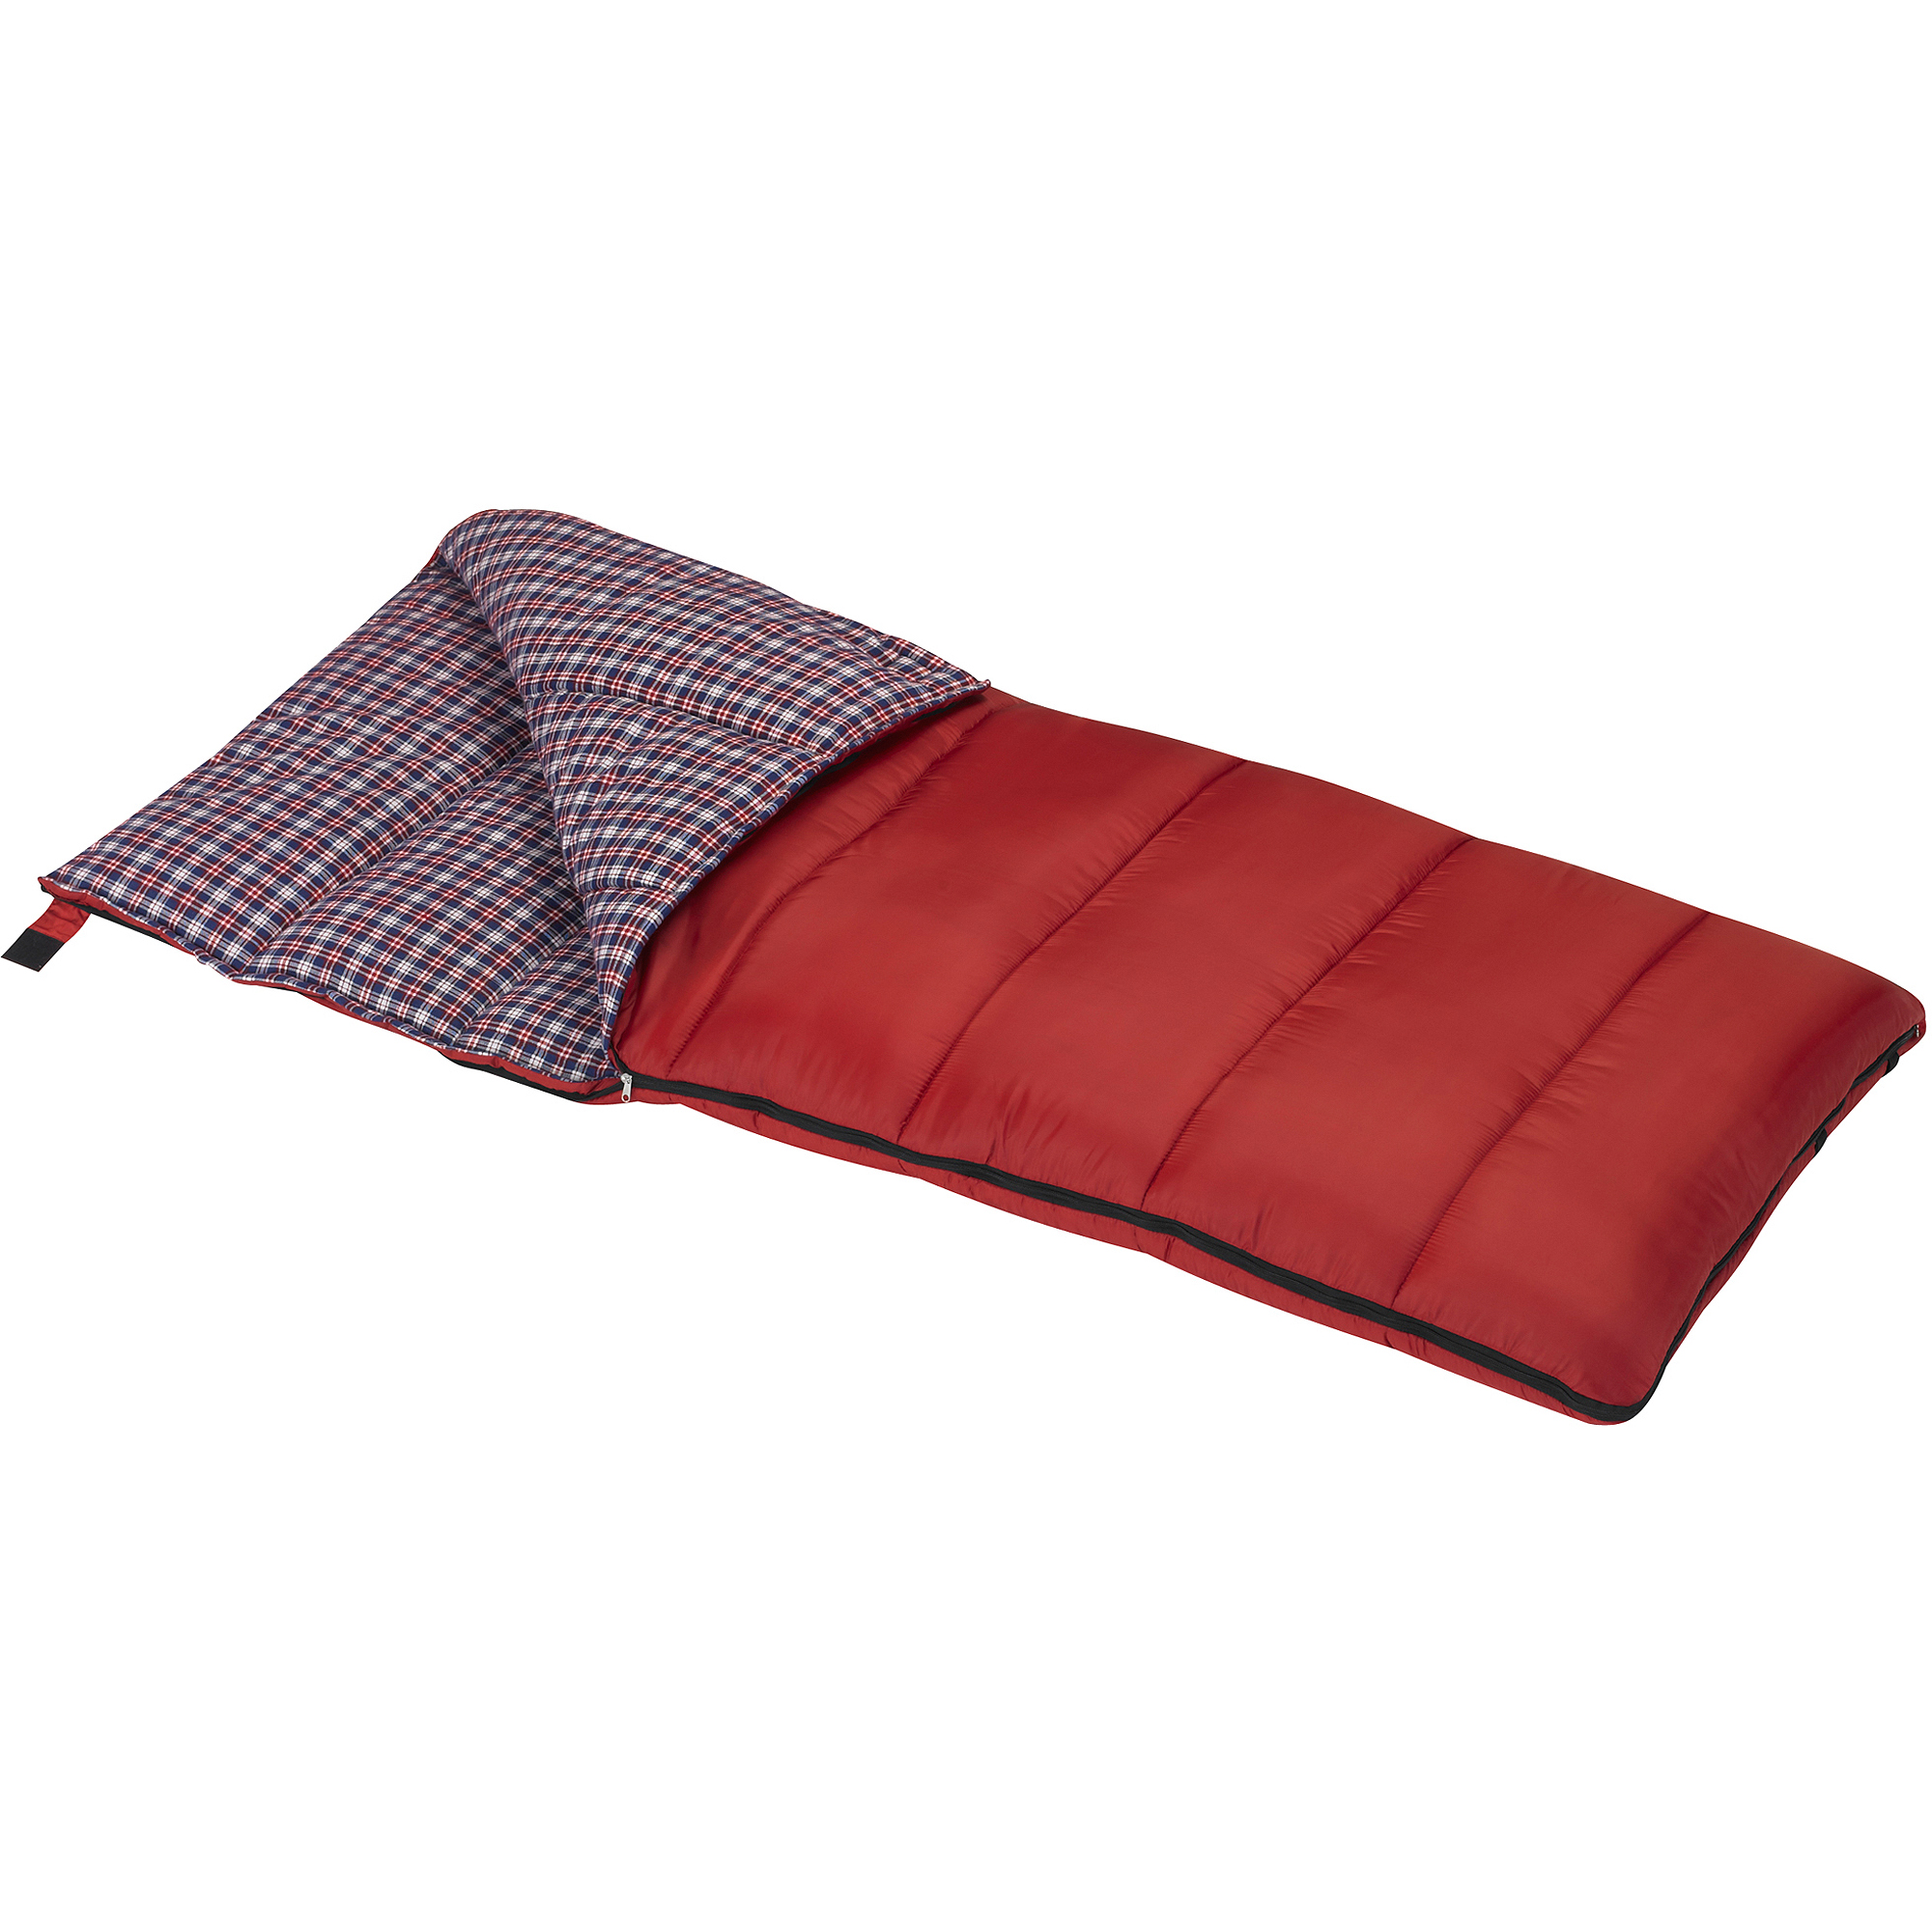 Wenzel Cardinal 30-Degree Sleeping Bag, Red by Wenzel